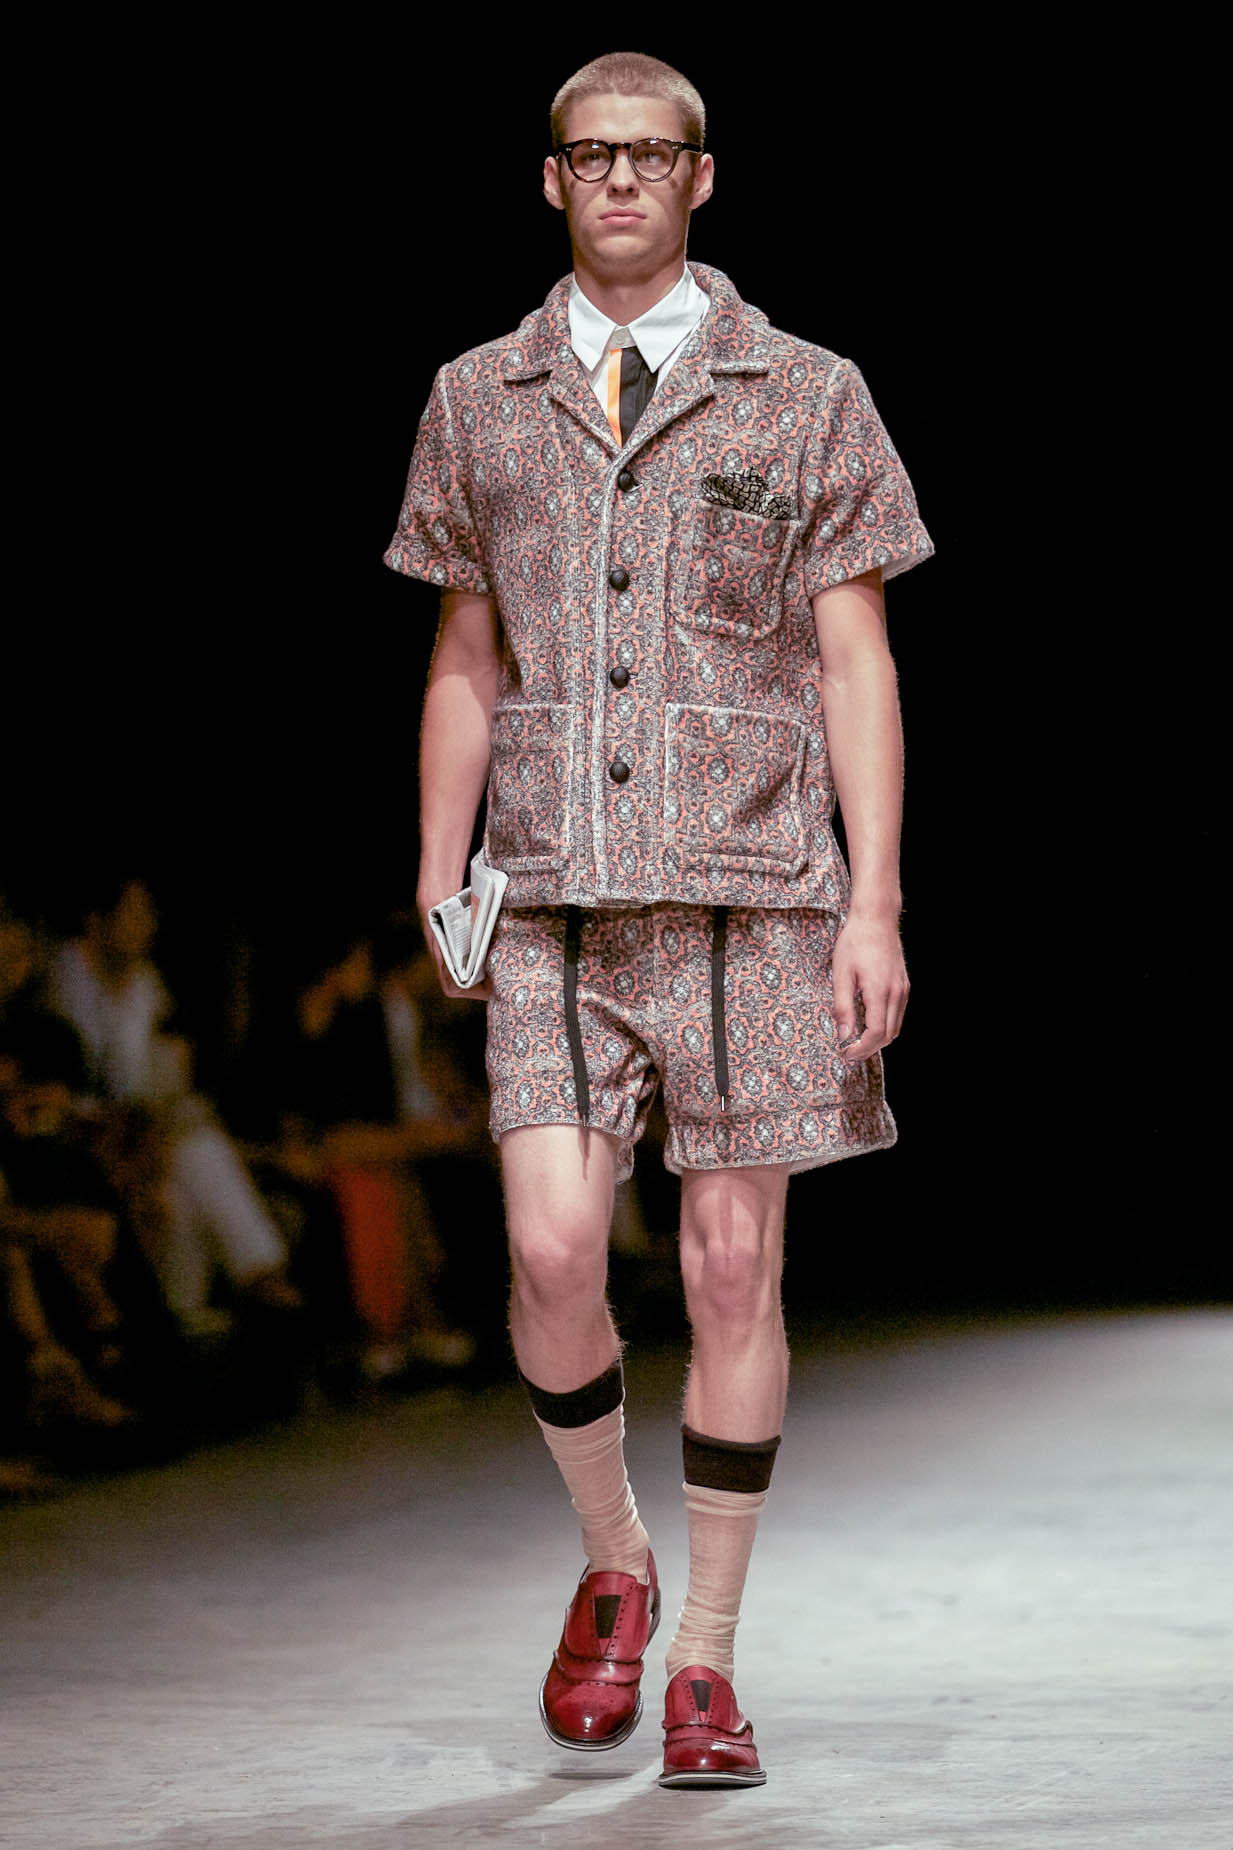 Runway Andrea Pompilio Spring Summer 2013 Men Collection Pitti Immagine Uomo